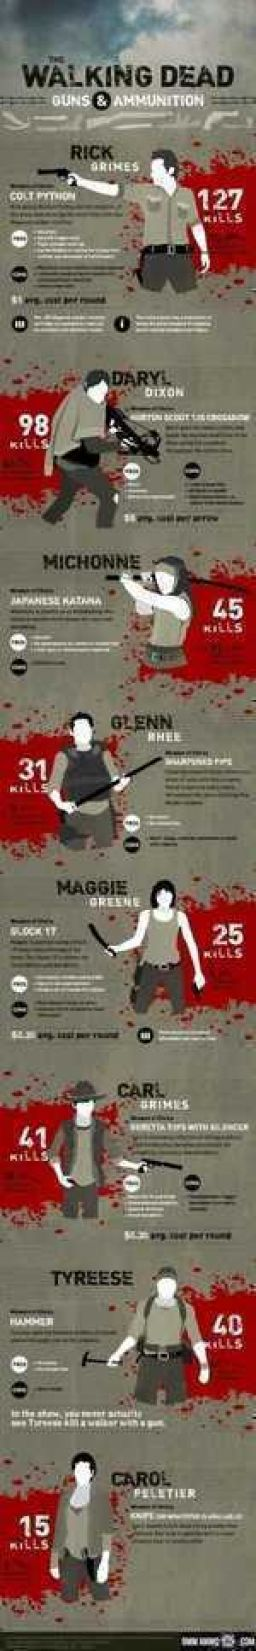 Kills and weapons. The walking dead.